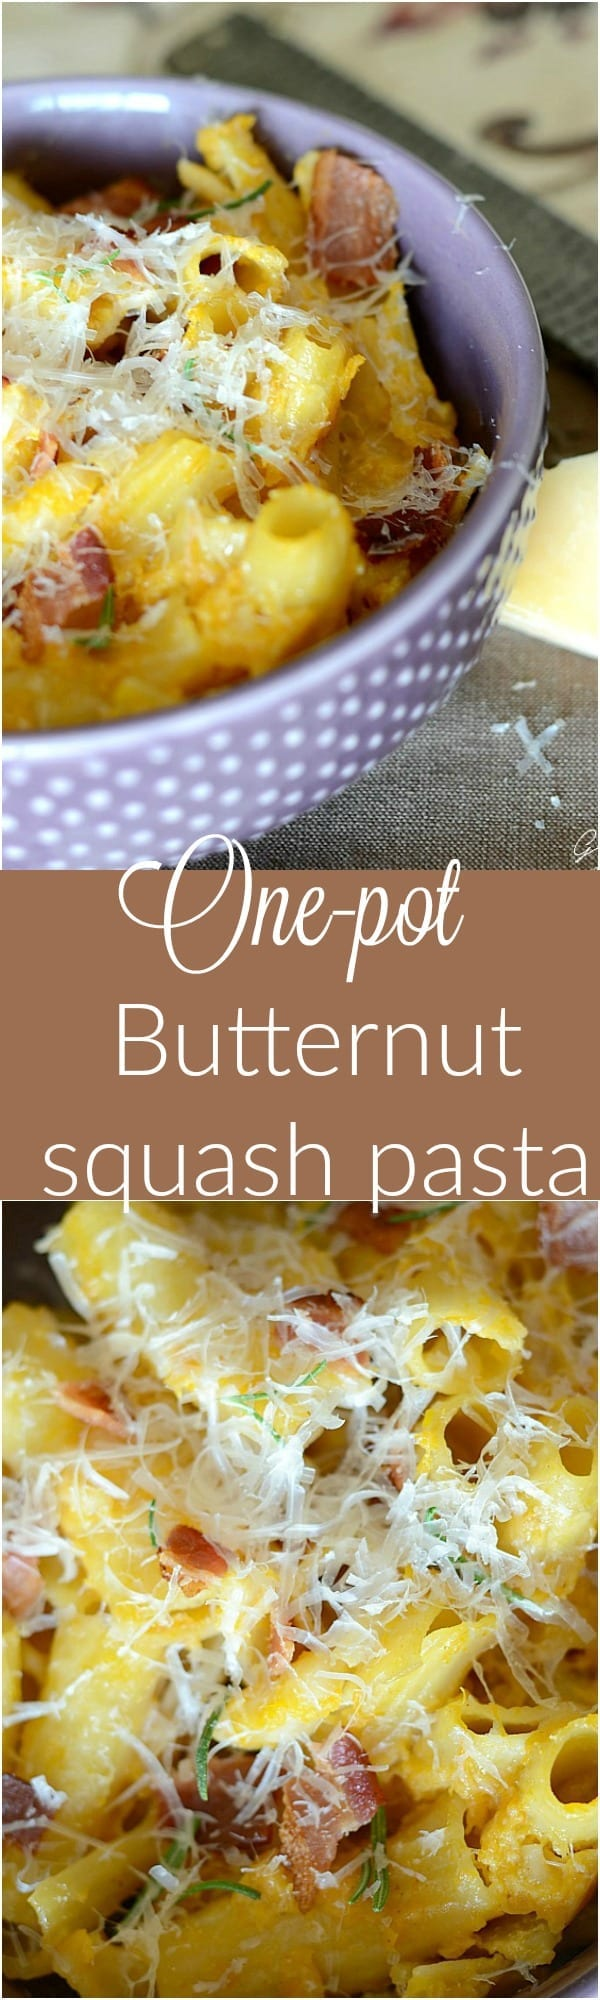 Creamy one pot butternut squash and bacon pasta! Such an easy and delicious recipe!